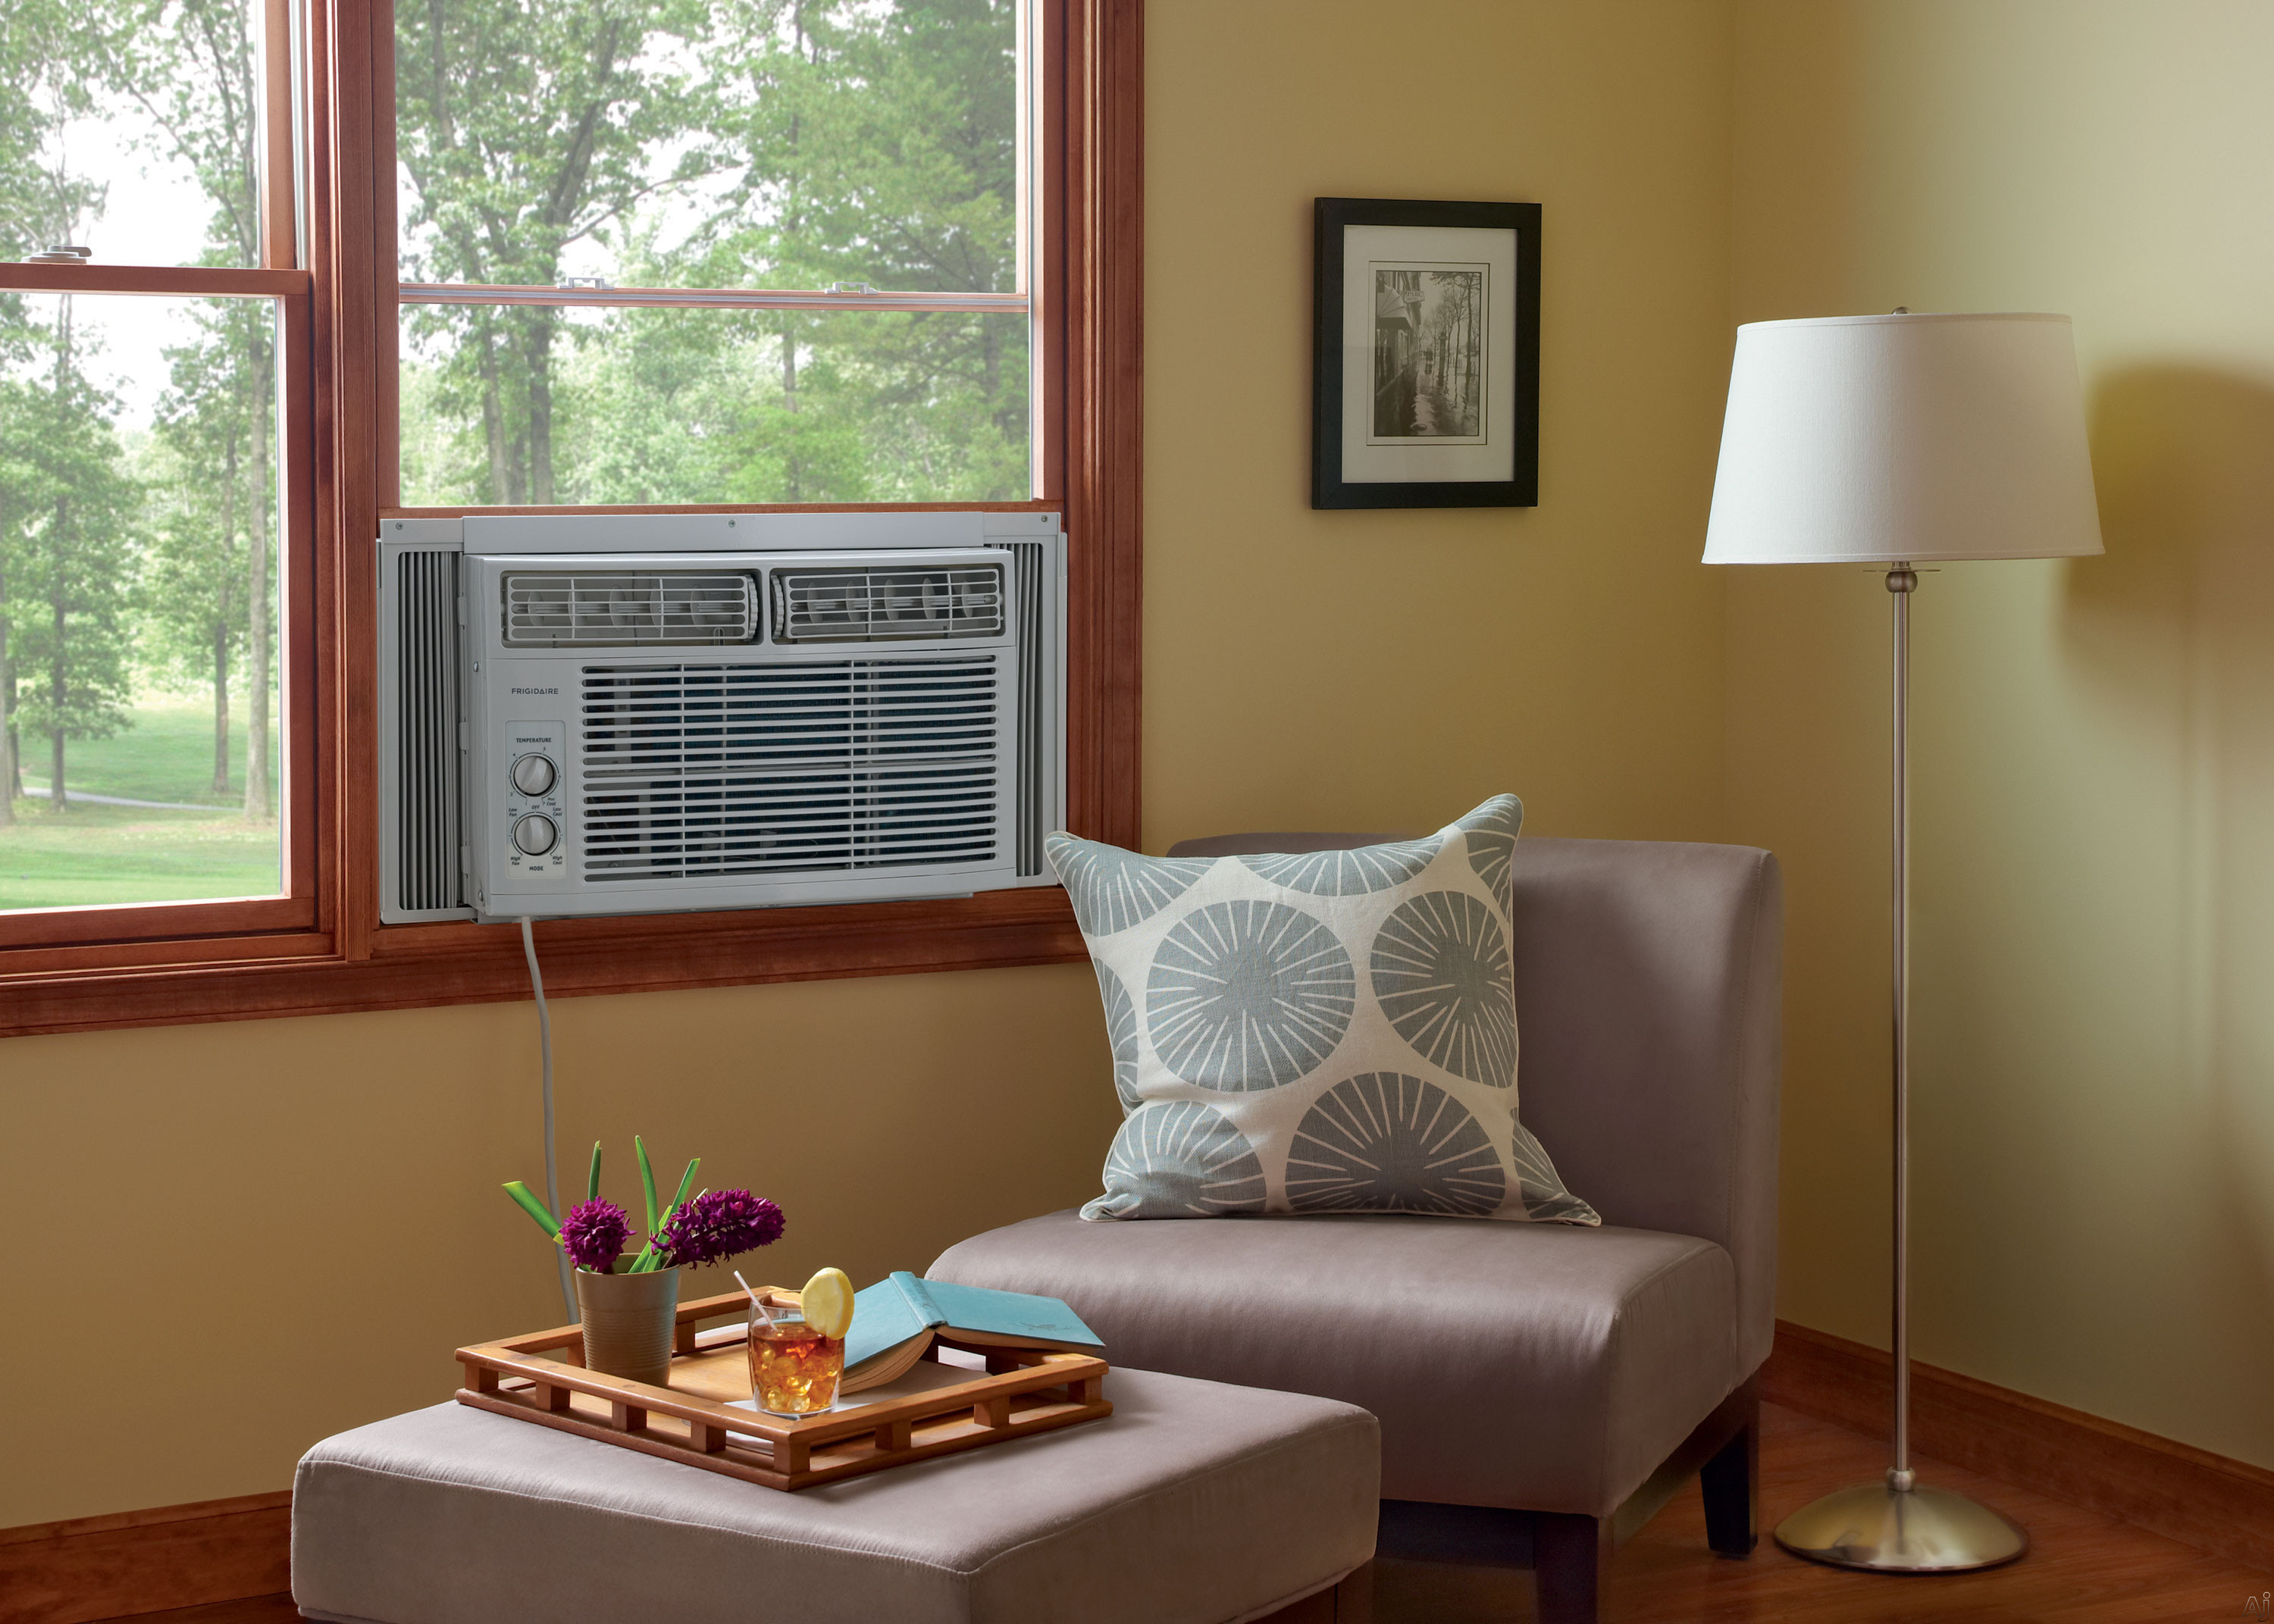 Home > Air Conditioners > Room Air Conditioners > FFRA0611Q1 #65402B